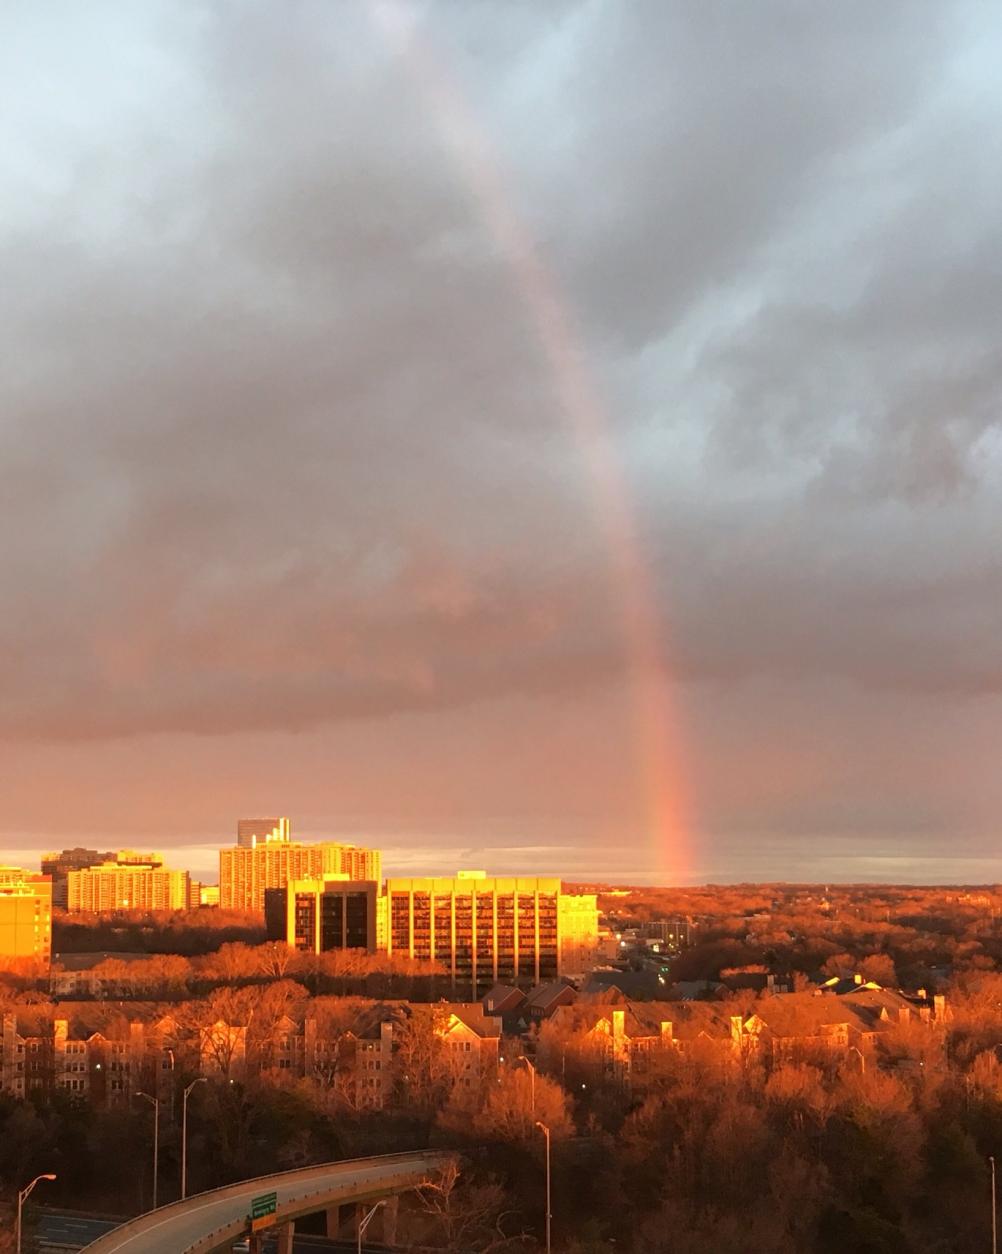 Another post-storm rainbow on the morning of Thrusday, Feb. 25, 2016. (395 & King via Twitter)